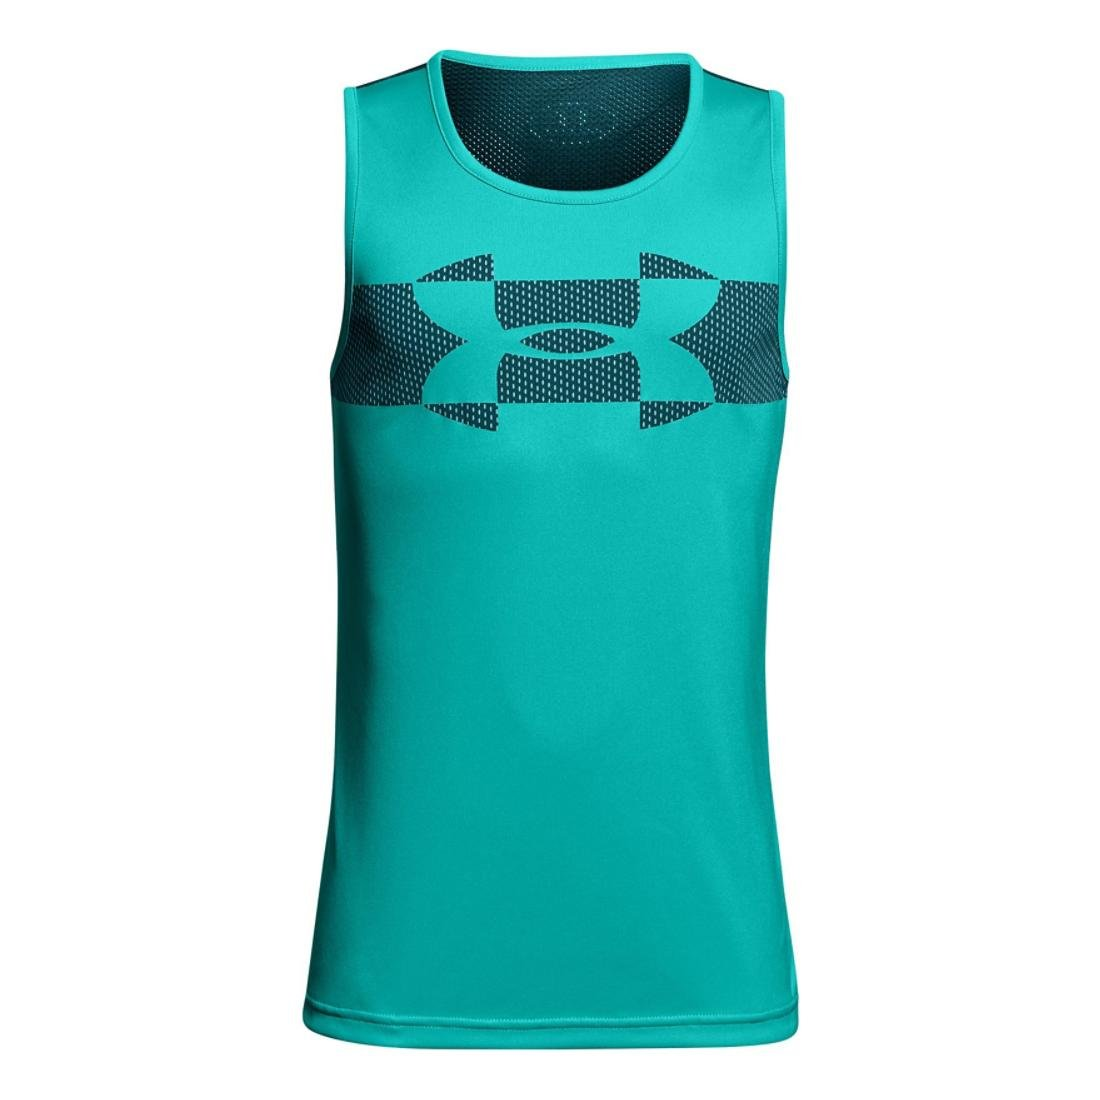 Under Armour ボーイズ テックタンク YL Teal/Teal/Teal B07FXTL5DW